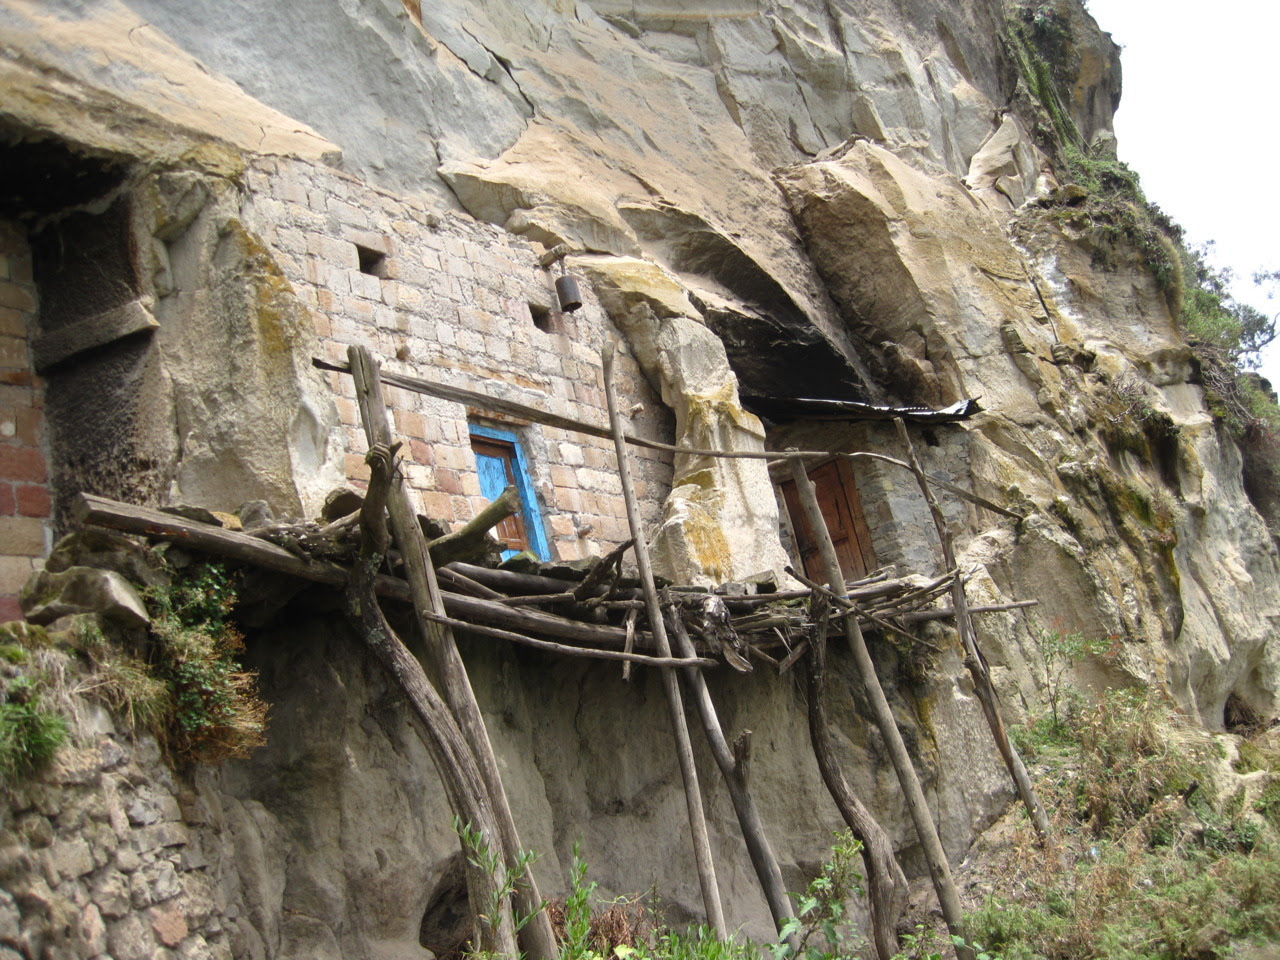 Rock carved dwelling near Lalibela, Ethiopia. Contributed by Goran Grahovac